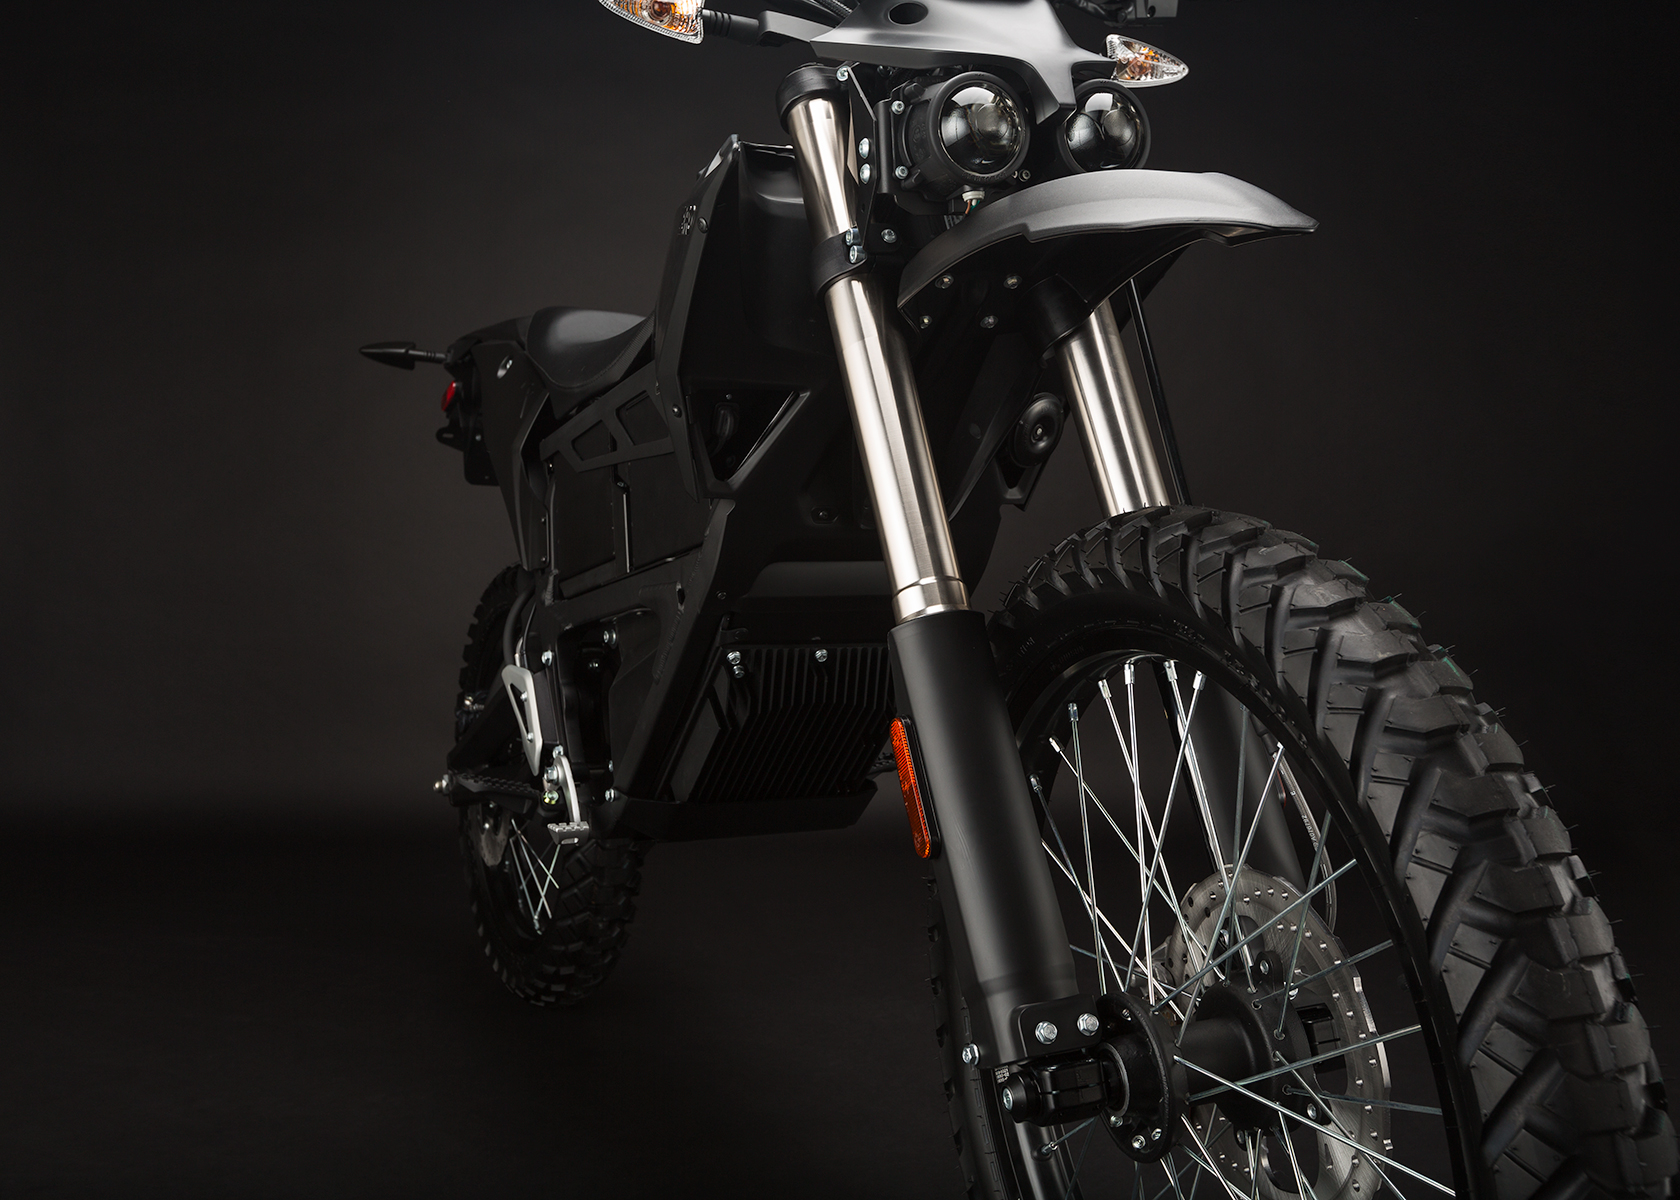 '.2014 Zero FX Electric Motorcycle: Front Fork.'